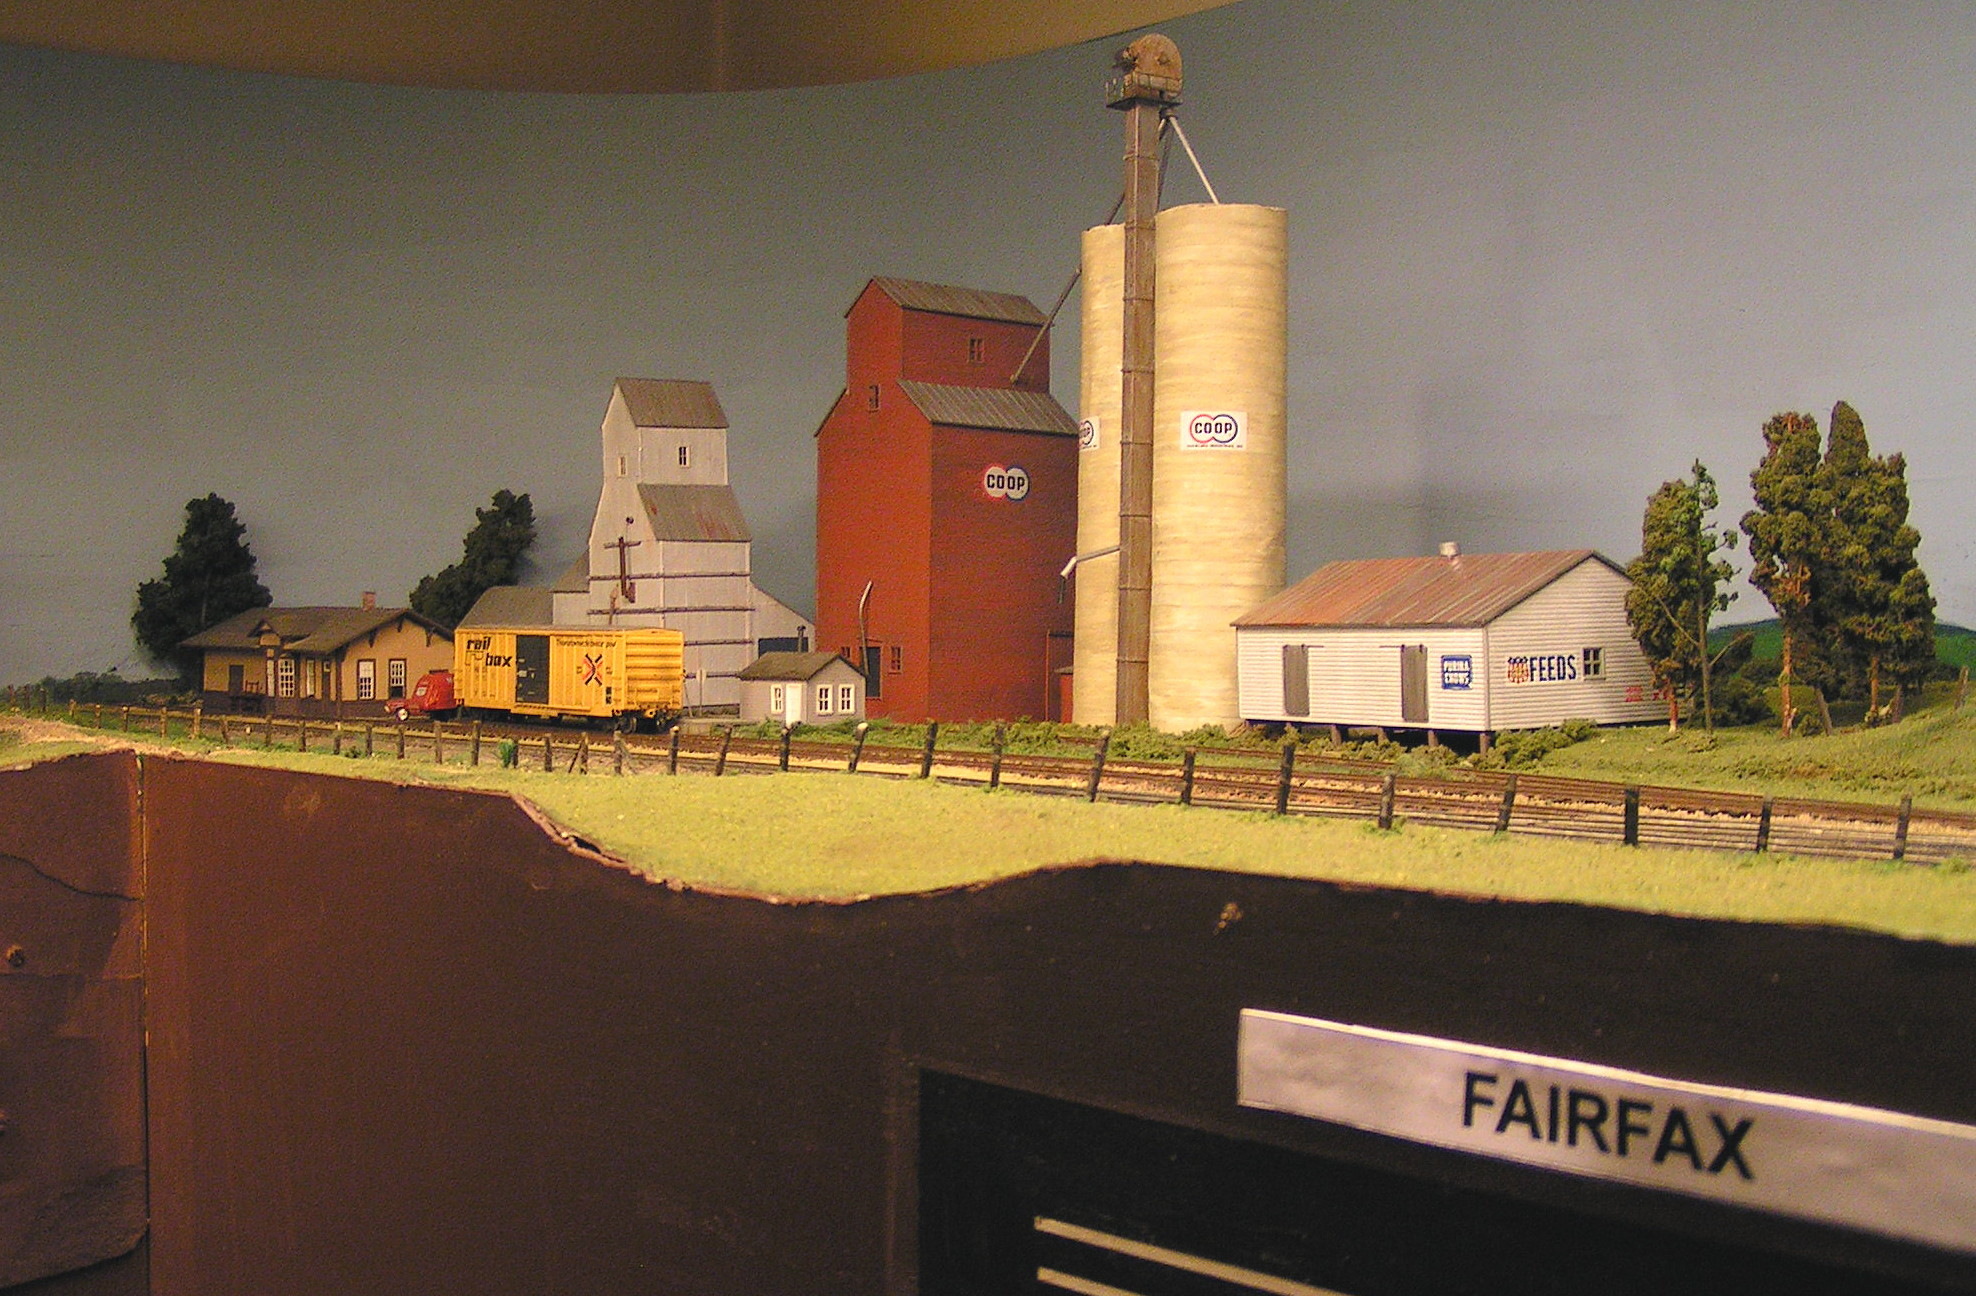 Fairfax, IA, inspired by Annawan, IL on the IAIS.